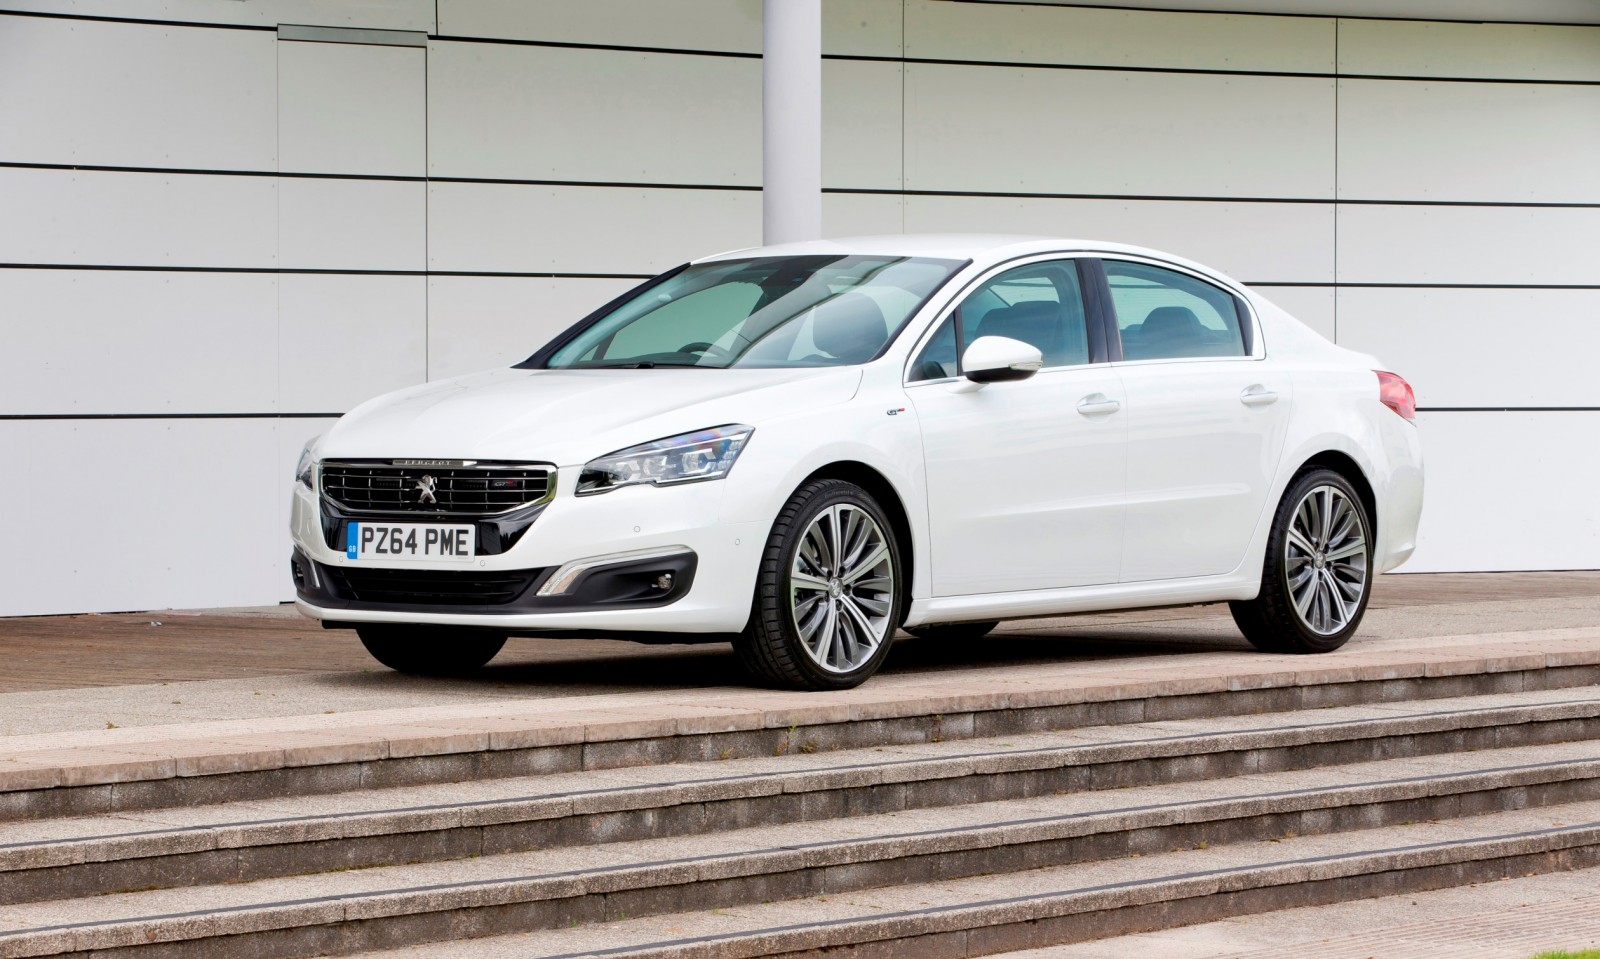 Update2 New Photos - 2015 Peugeot 508 Facelifted With New LED DRLs, Box-Design Beams and Tweaked Cabin Tech 2